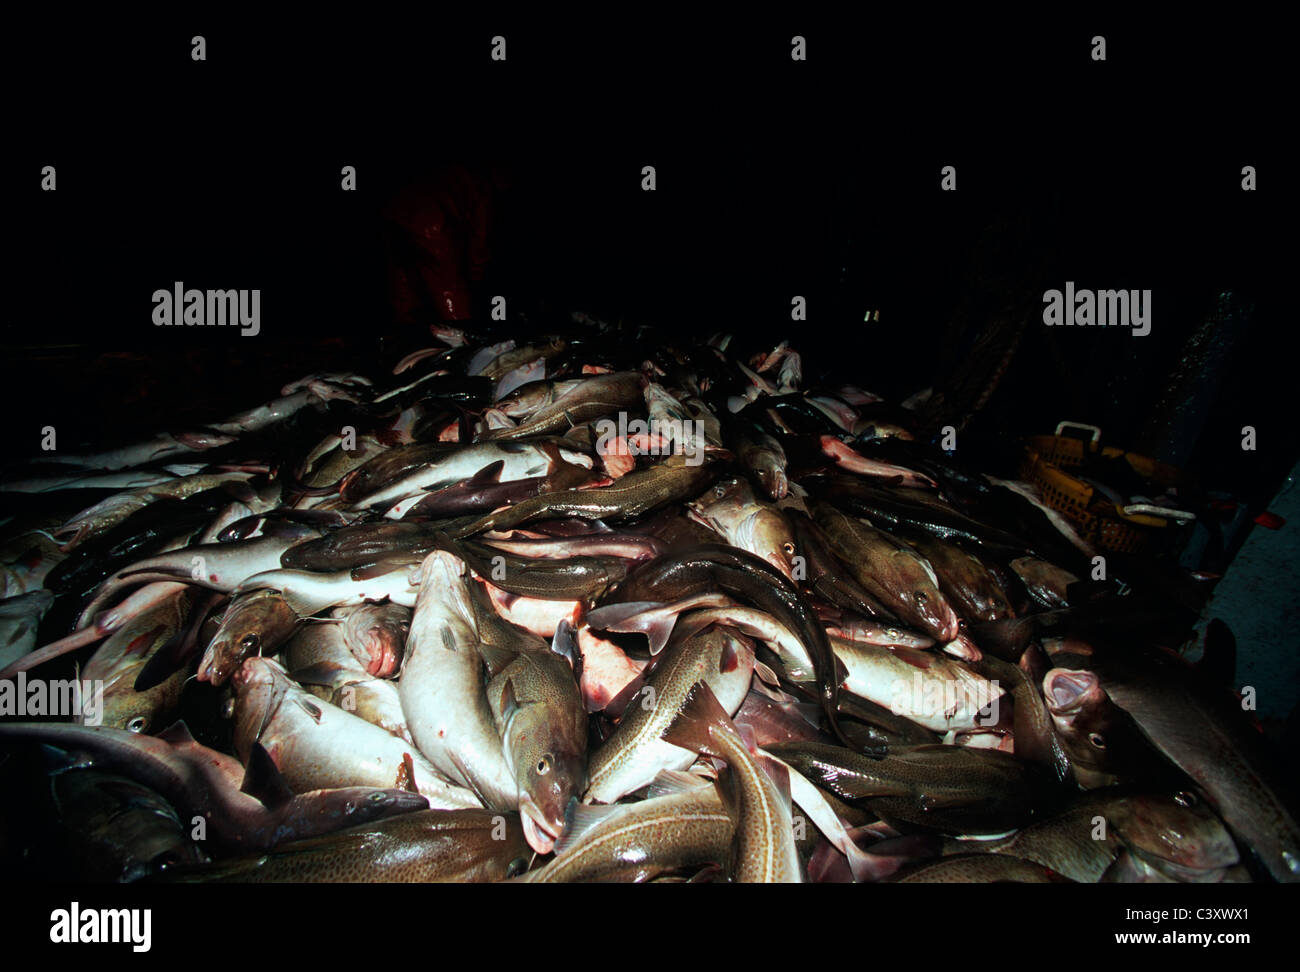 Substantial catch of codfish (Gadus morhua) pulled in from the dragger net. Stellwagon Bank, New England, Atlantic - Stock Image